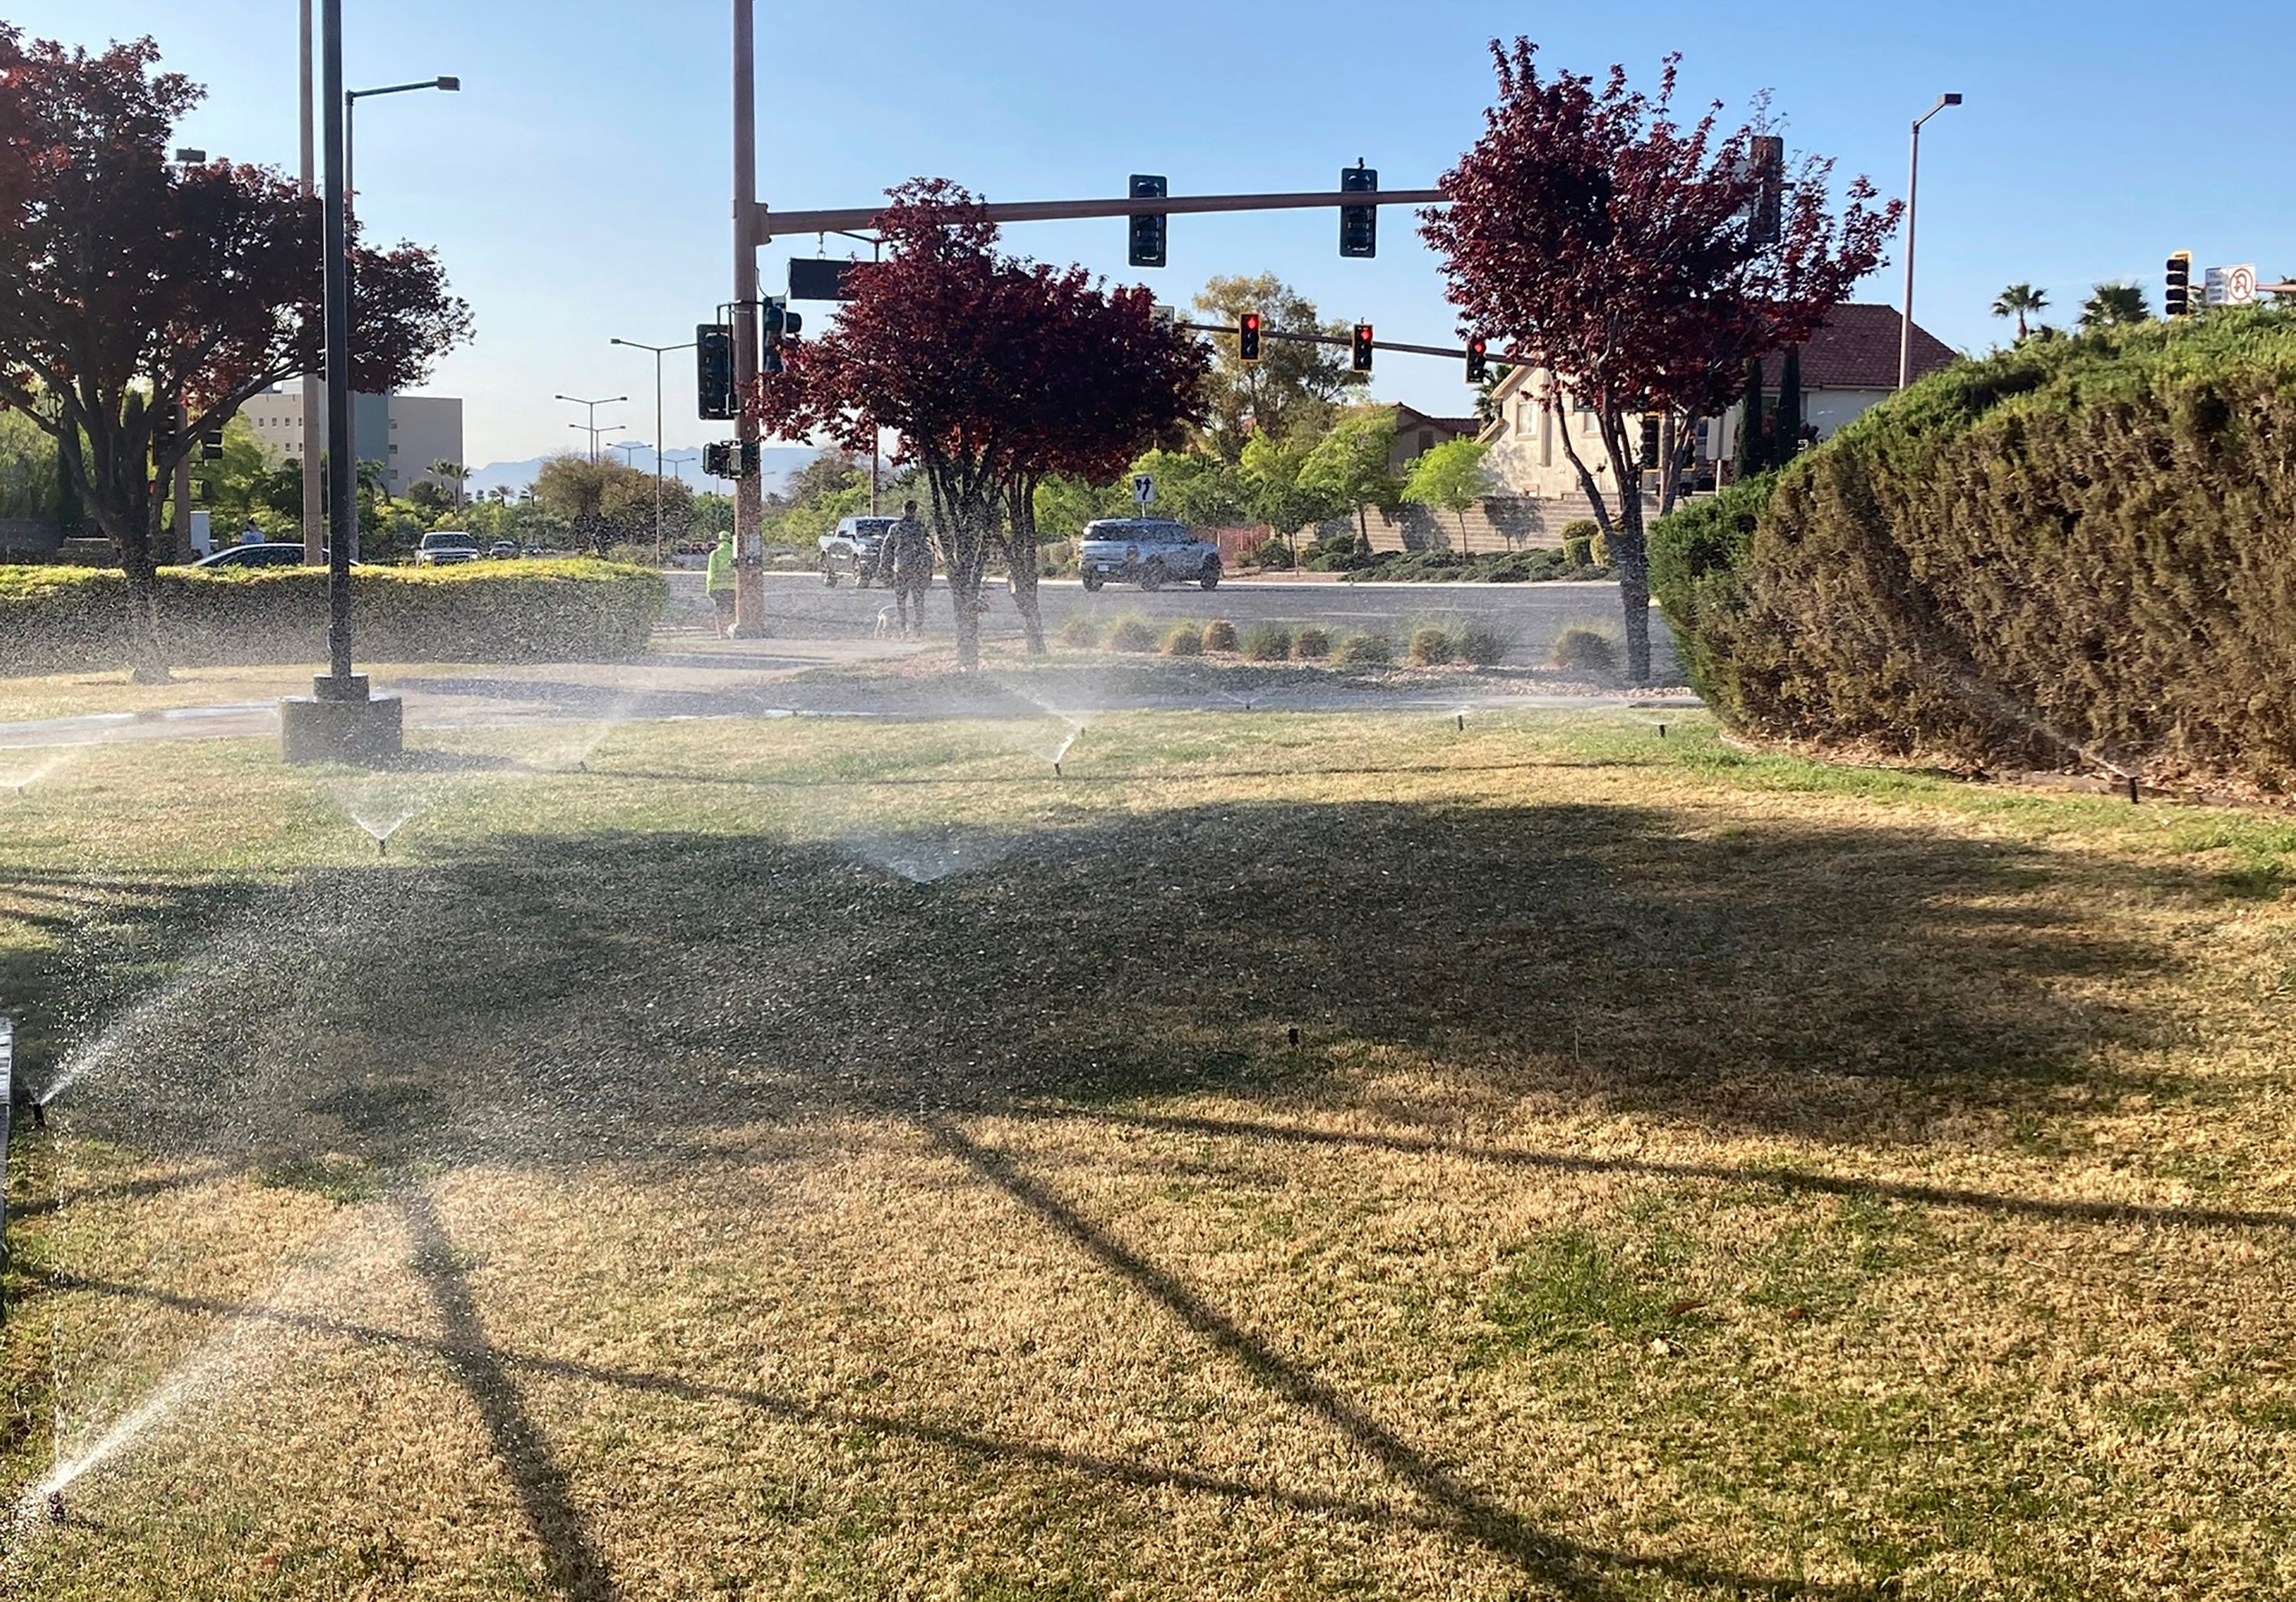 Las Vegas pushes to become first to ban ornamental grass in water conservation move 2